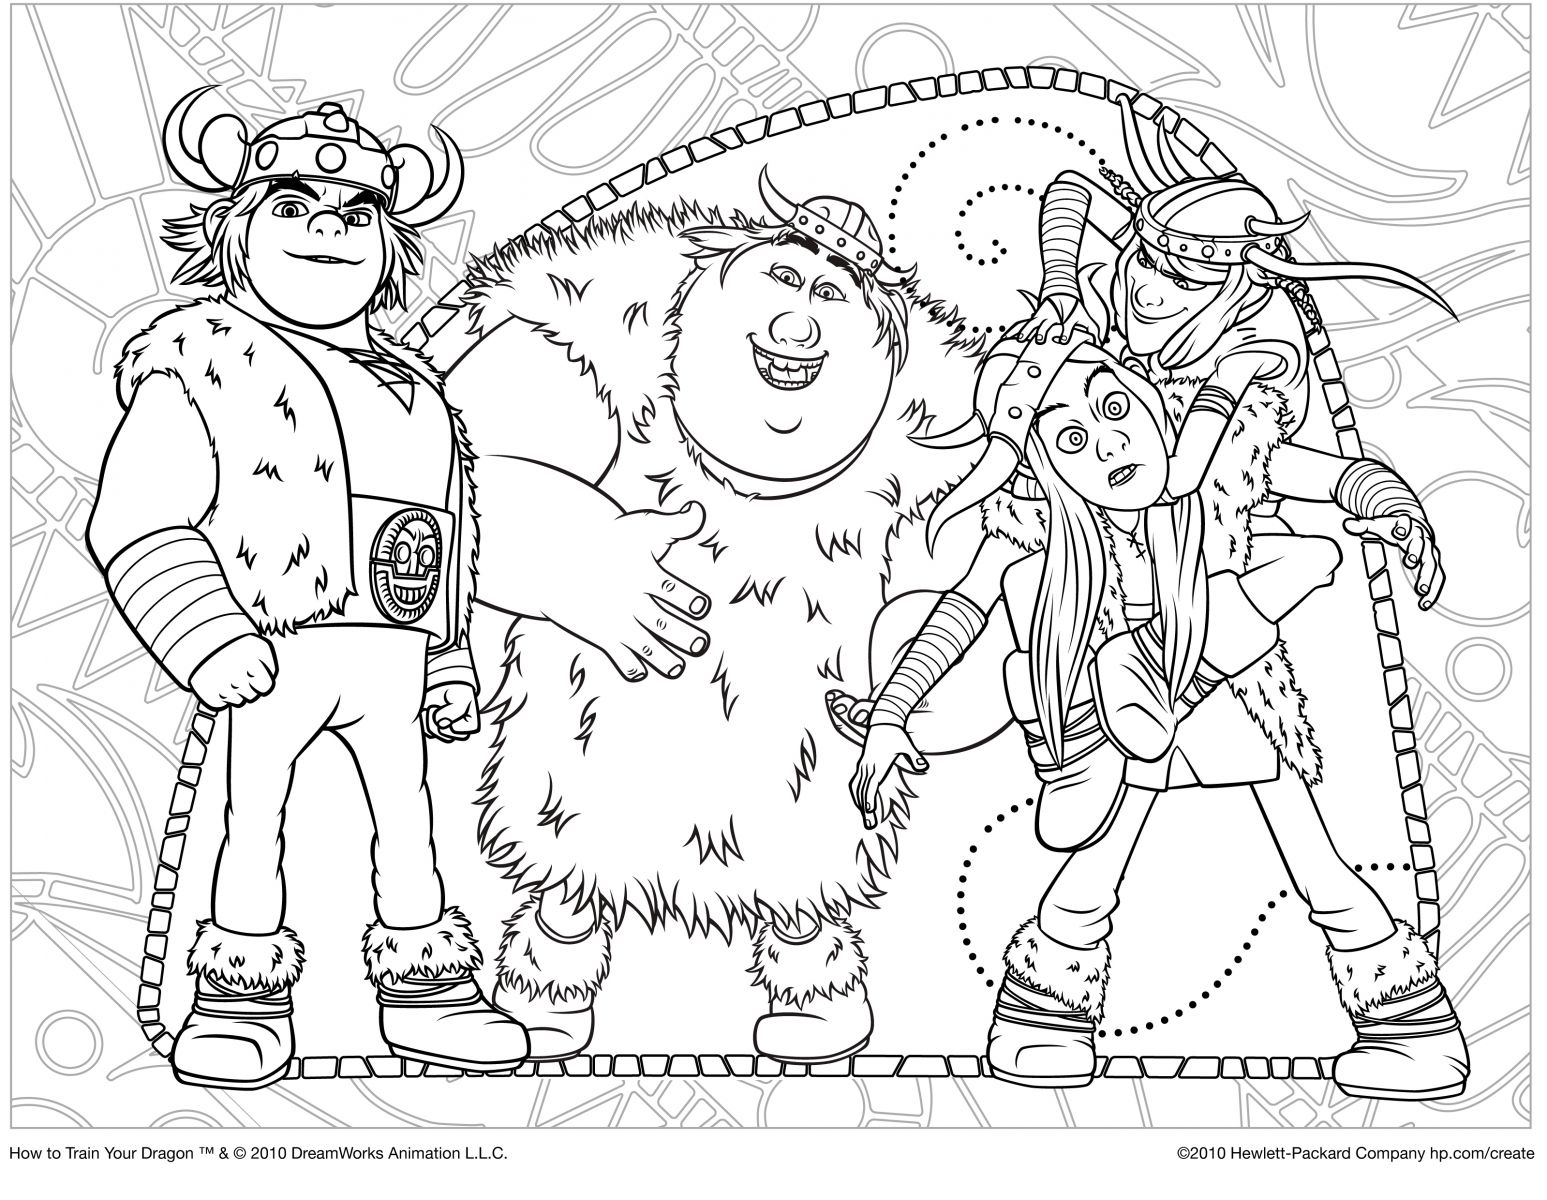 Free printable coloring pages how to train your dragon - Berk Dragons Coloring Pages Berk Free Printable Coloring Pages Tg Httyd Coloring Pages Little Holligans Berk